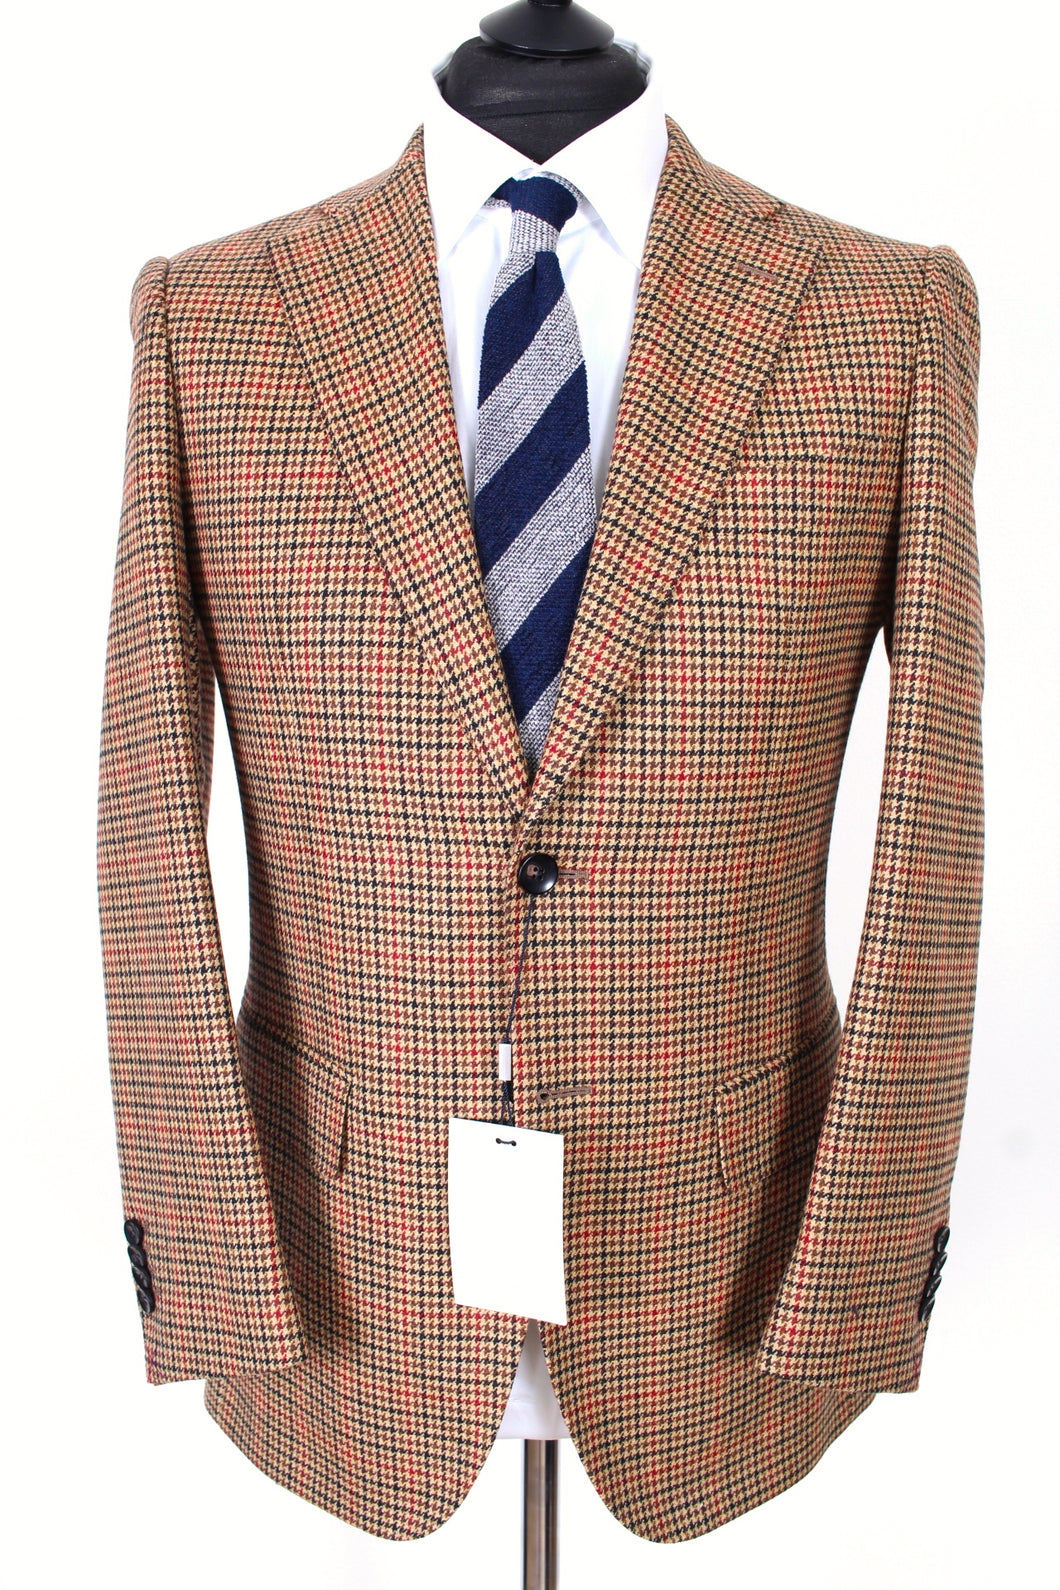 New Suitsupply Lazio Brown Houndstooth Wool and Cashmere Suit - Size 36S, 36R, 38S, 38R, 40S, 40R, 40L, 42S,  42L, 44S